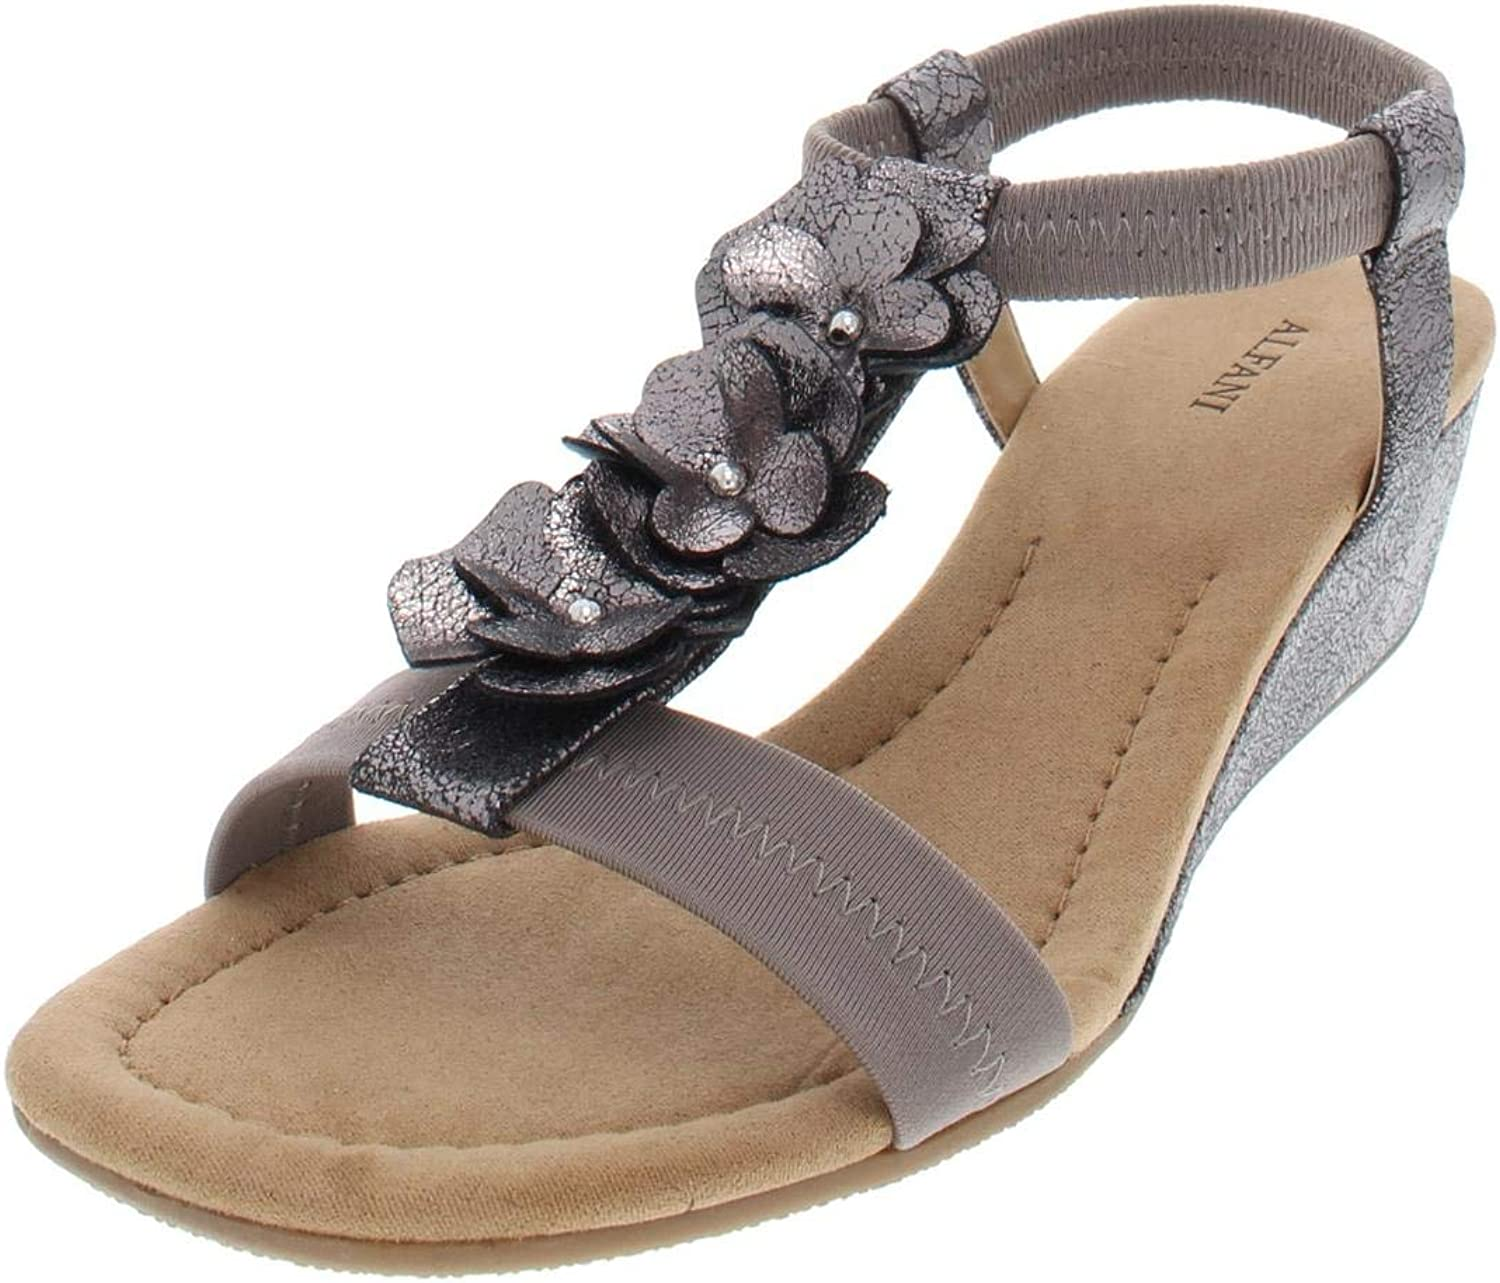 Alfani Womens Valensia Faux Leather Floral Wedge Sandals